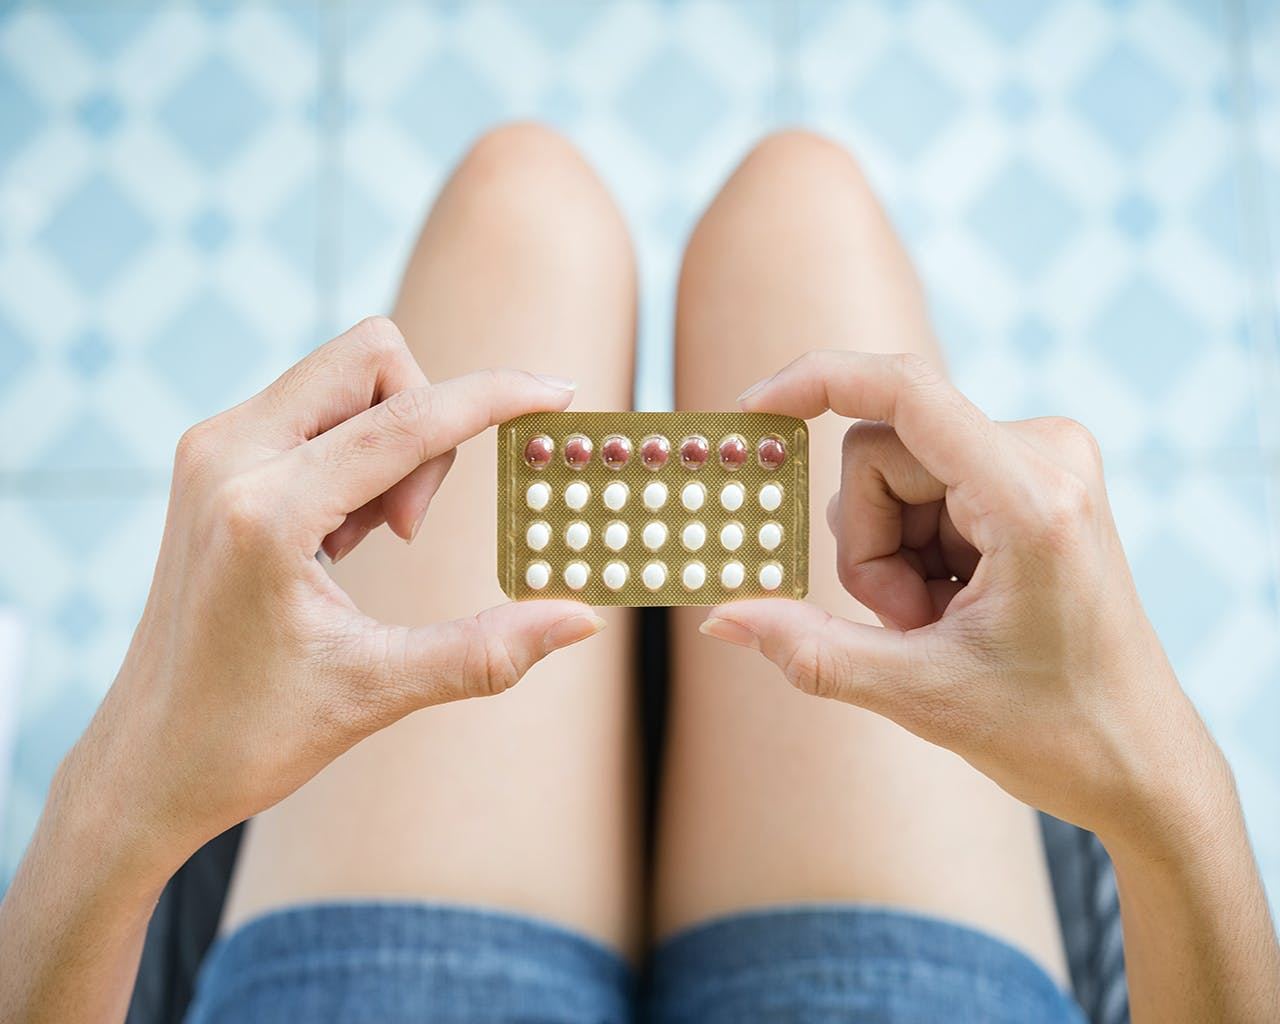 You Can Order Birth Control Pills And Erectile Dysfunction Medicine Discreetly From This FDA-licensed Online Shop